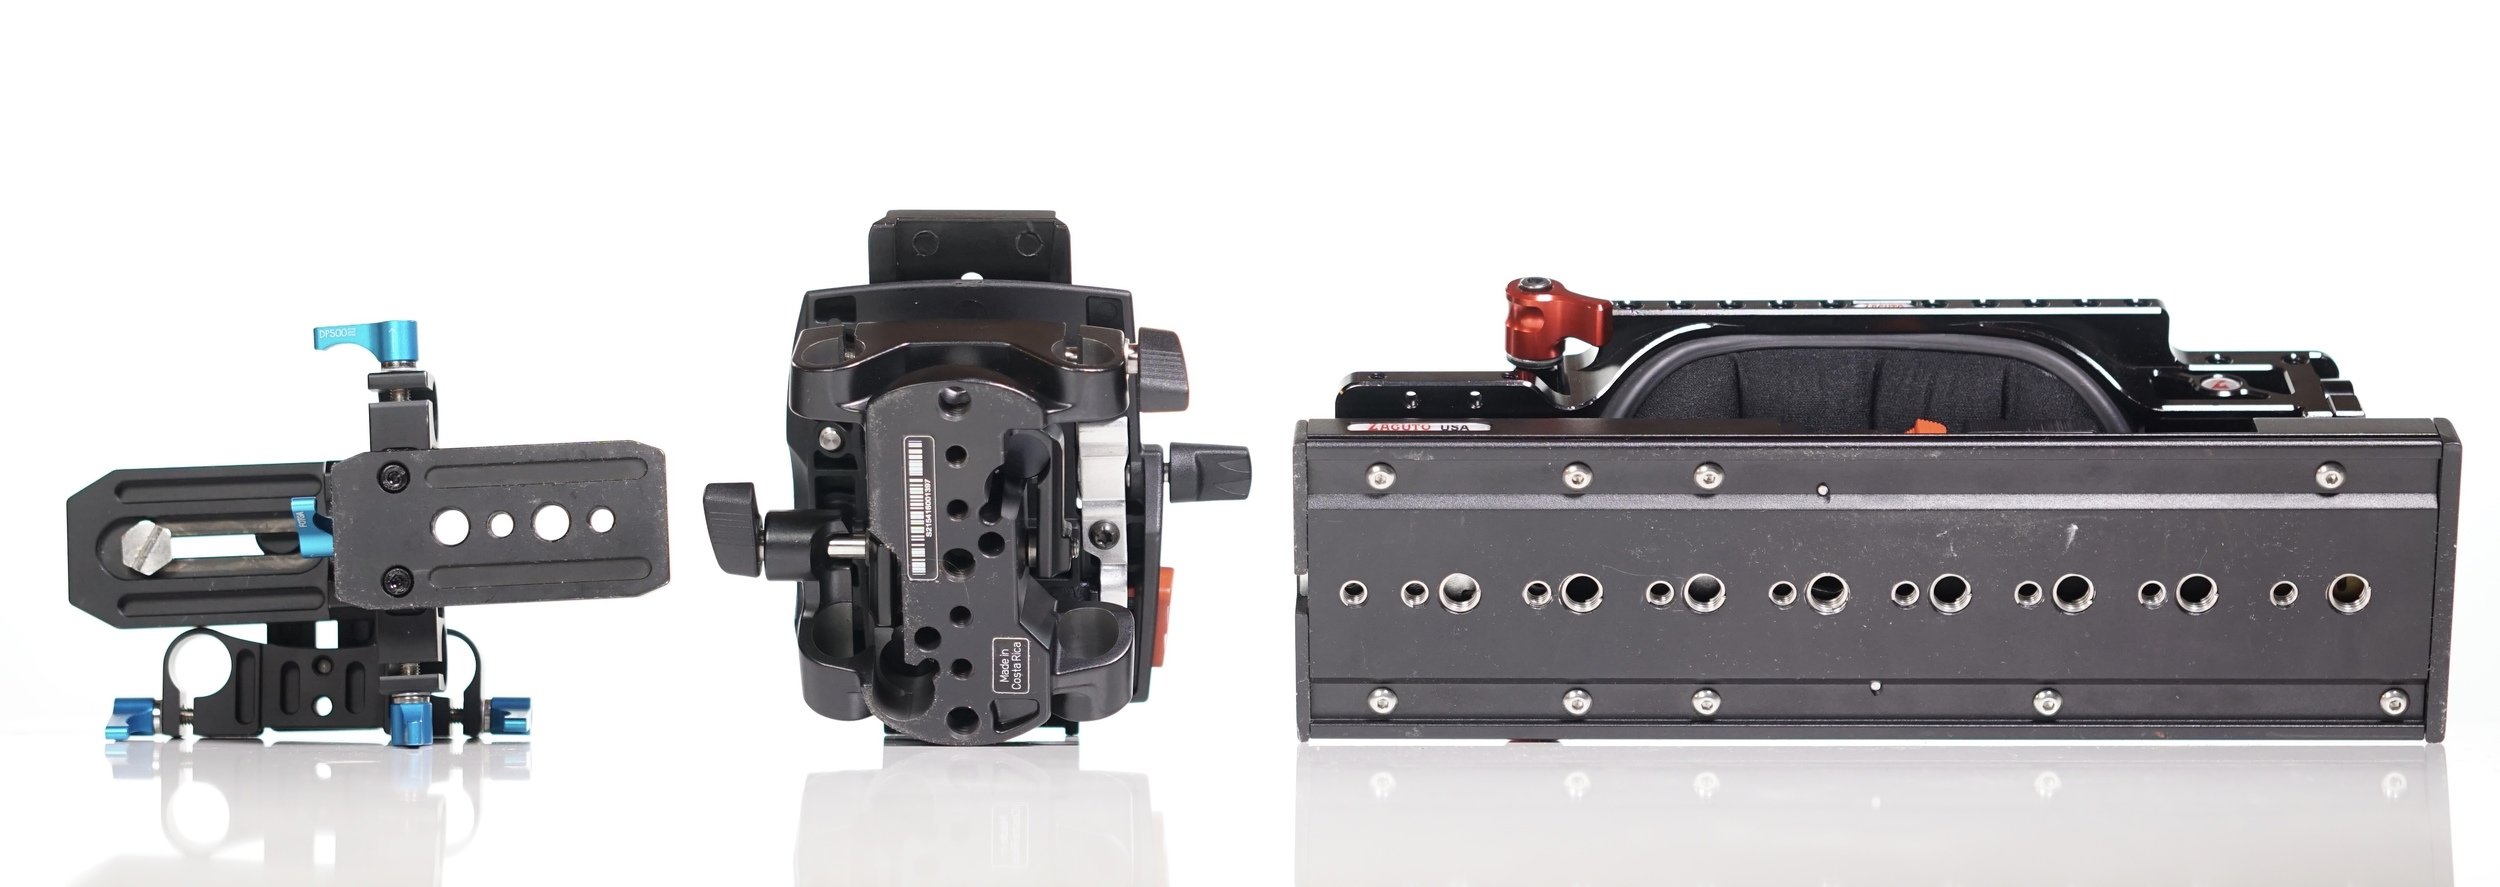 Left to right:  FOTGA ,  Sachtler  and  Zacuto . Increasing number of mounting points, larger surface area to spread the weight.